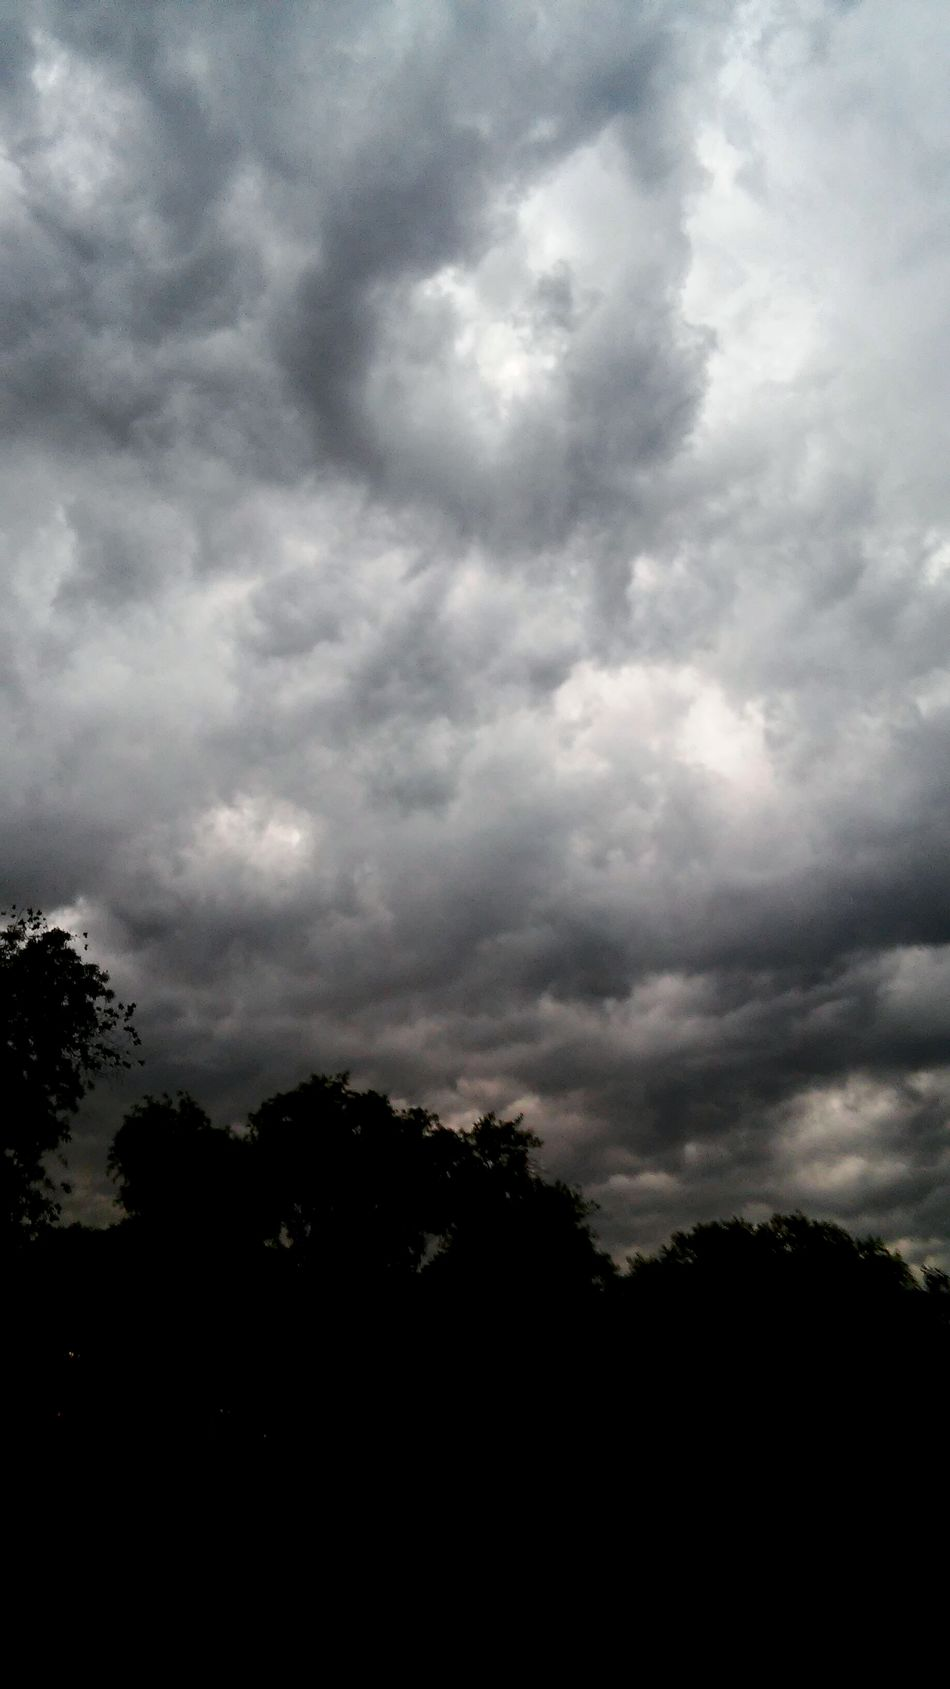 Nature Outdoors Beauty In Nature No People Storm Storm Clouds Stormy Weather Stormysky